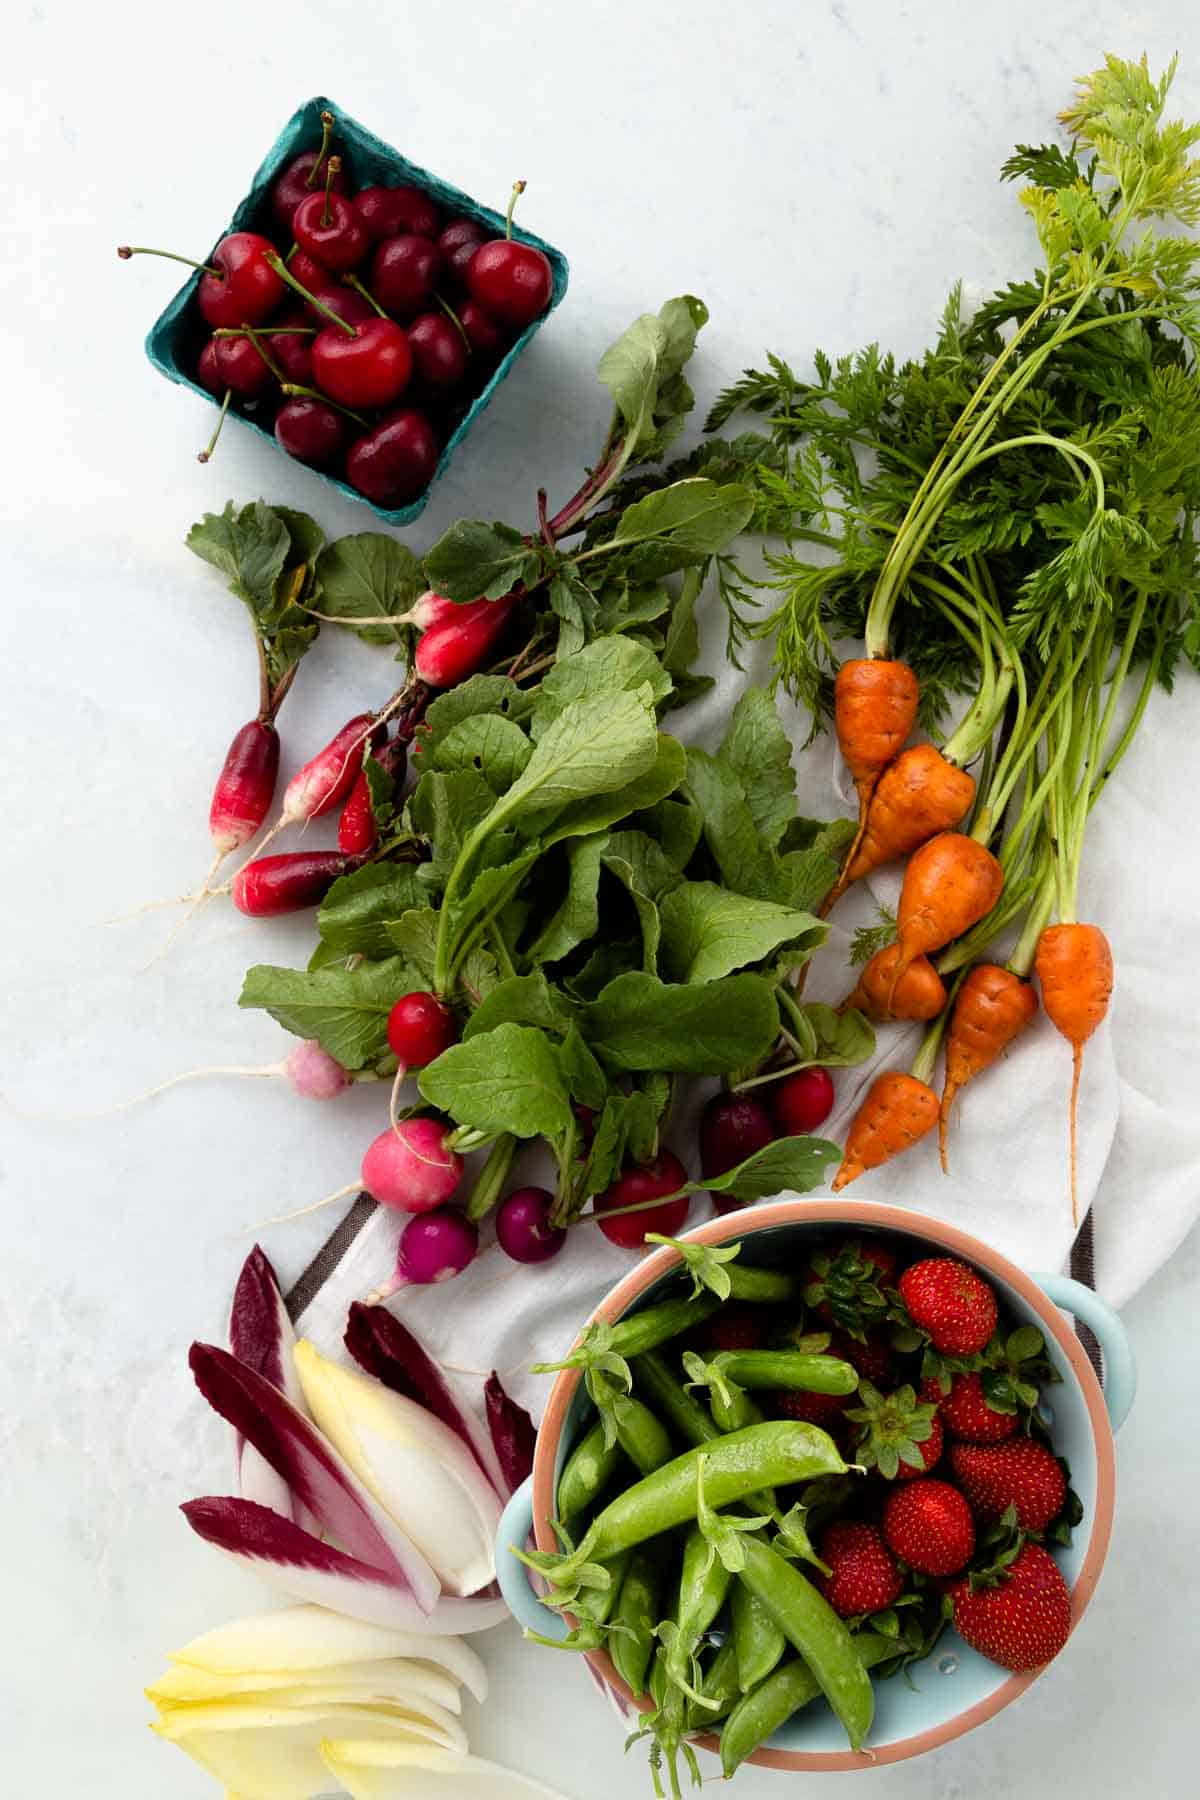 fresh green and red vegetables in small bowls on a white back drop